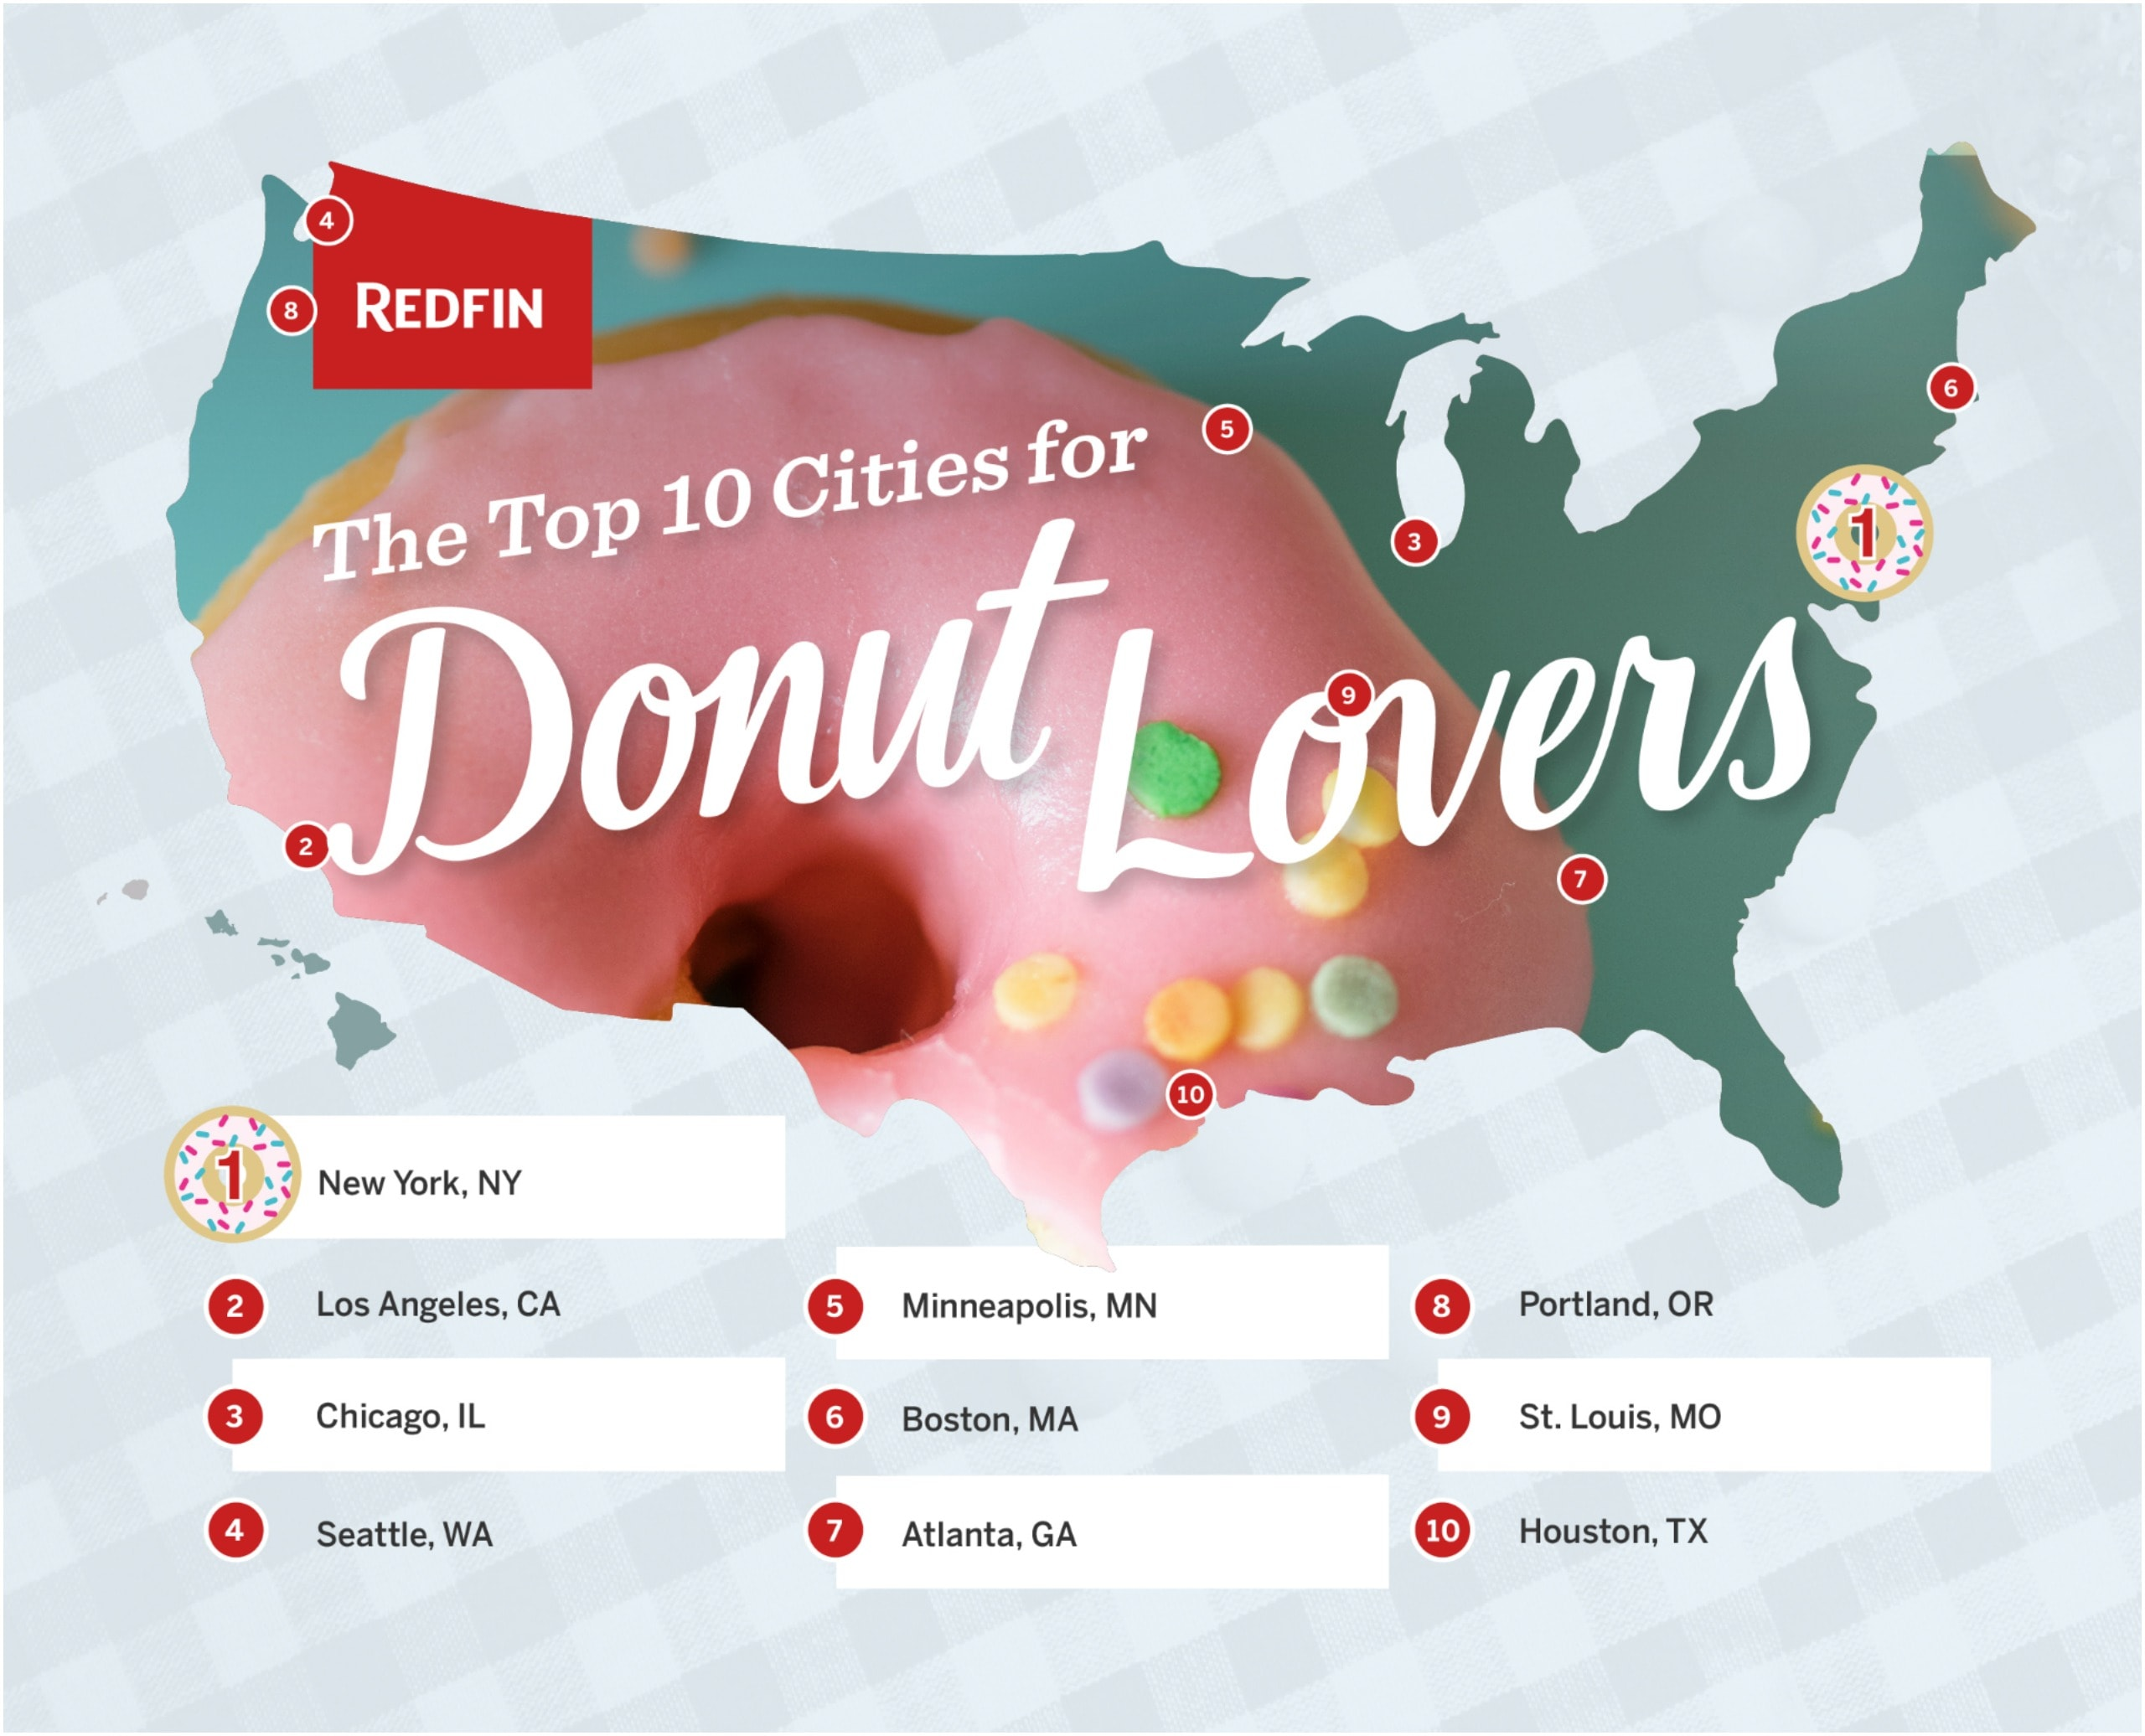 Best Donut Shops in the US